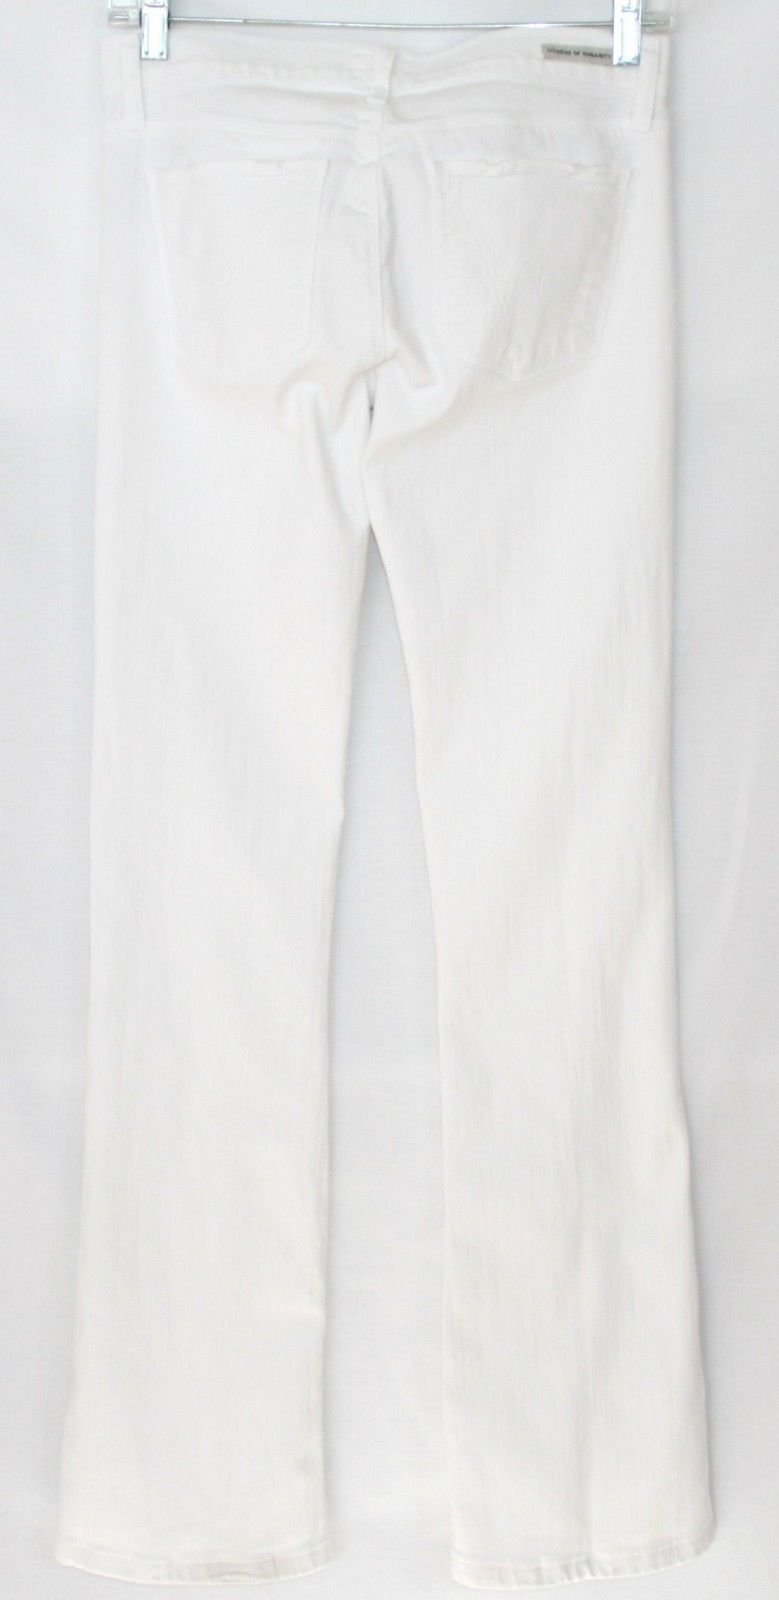 CITIZENS OF HUMANITY Jerome Dahan Freyed White Bootcut 5 Pocket Jeans Size 26